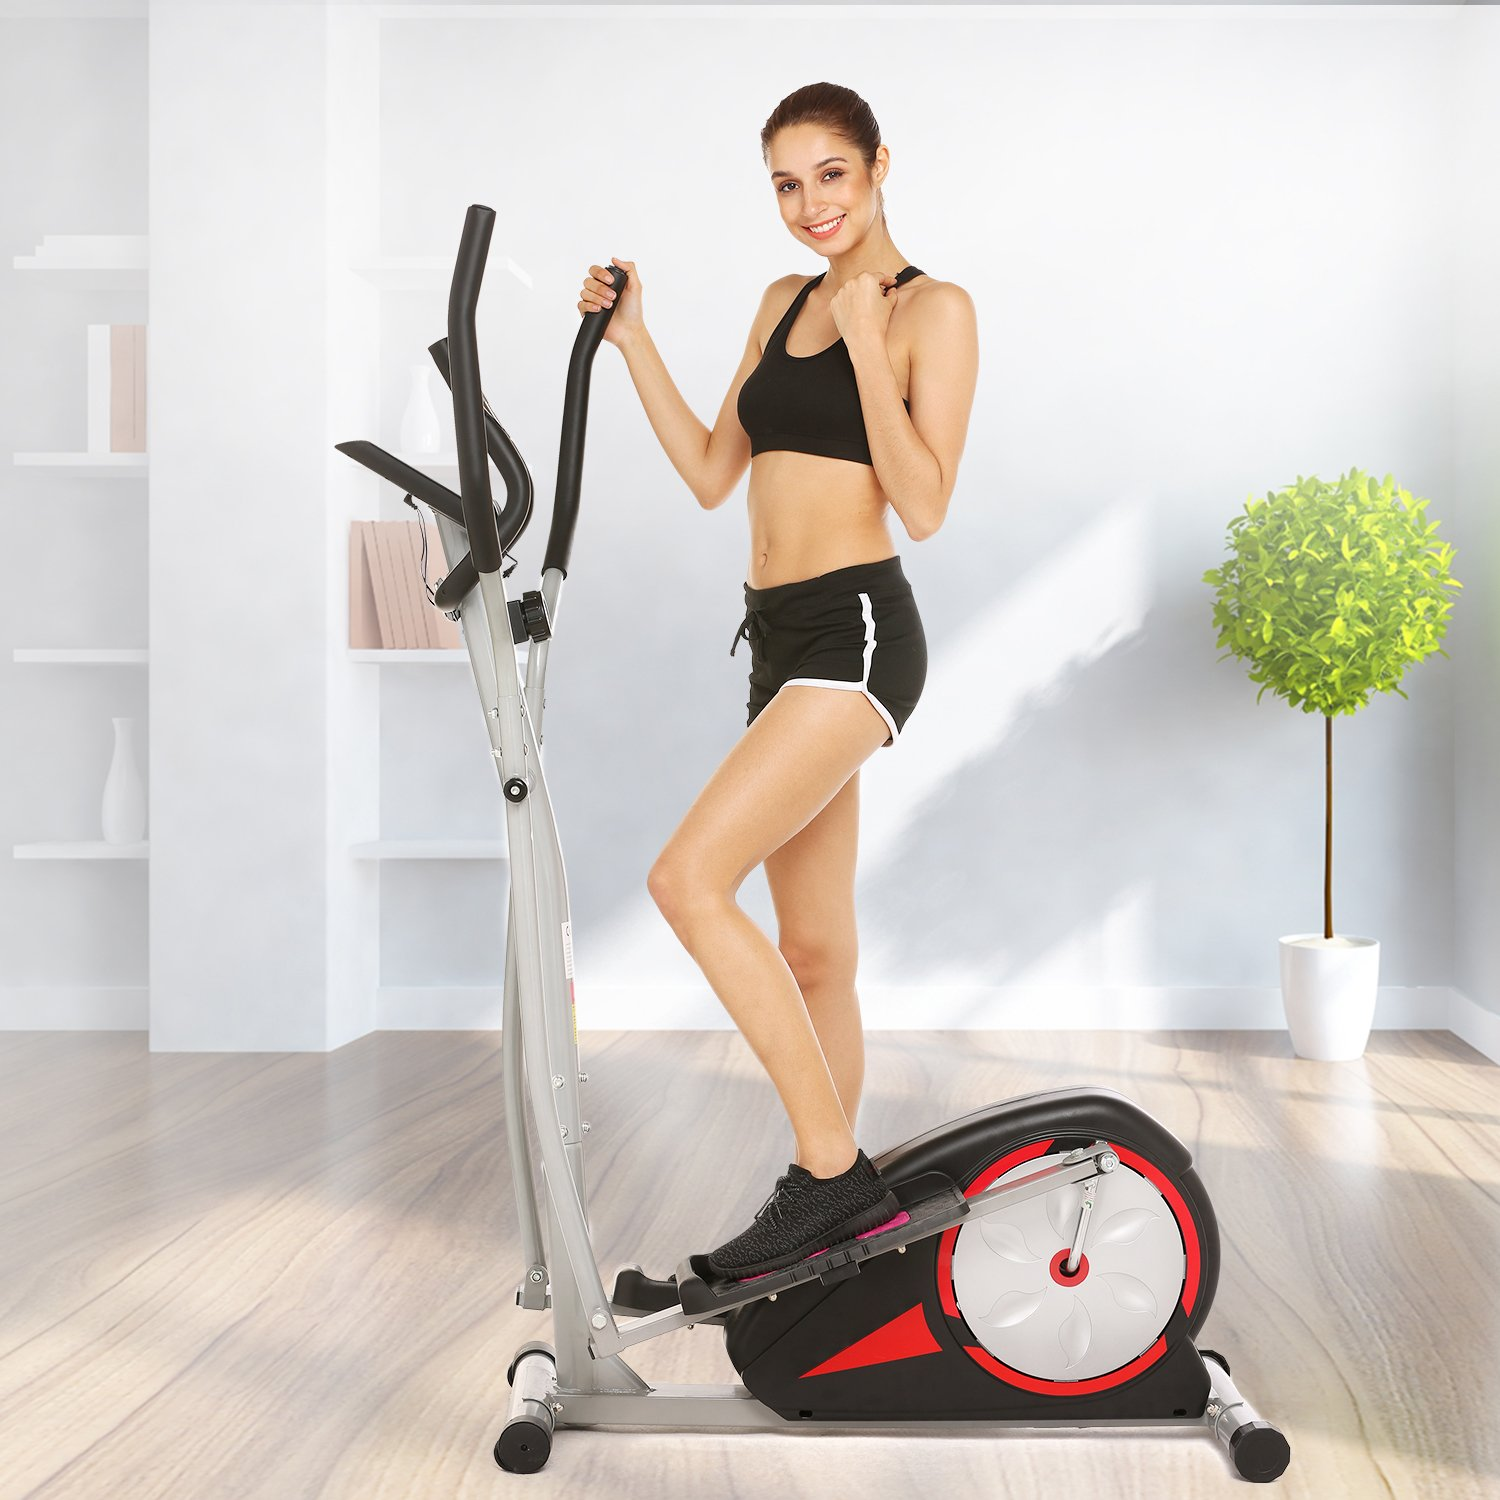 Jakaten Elliptical Trainer